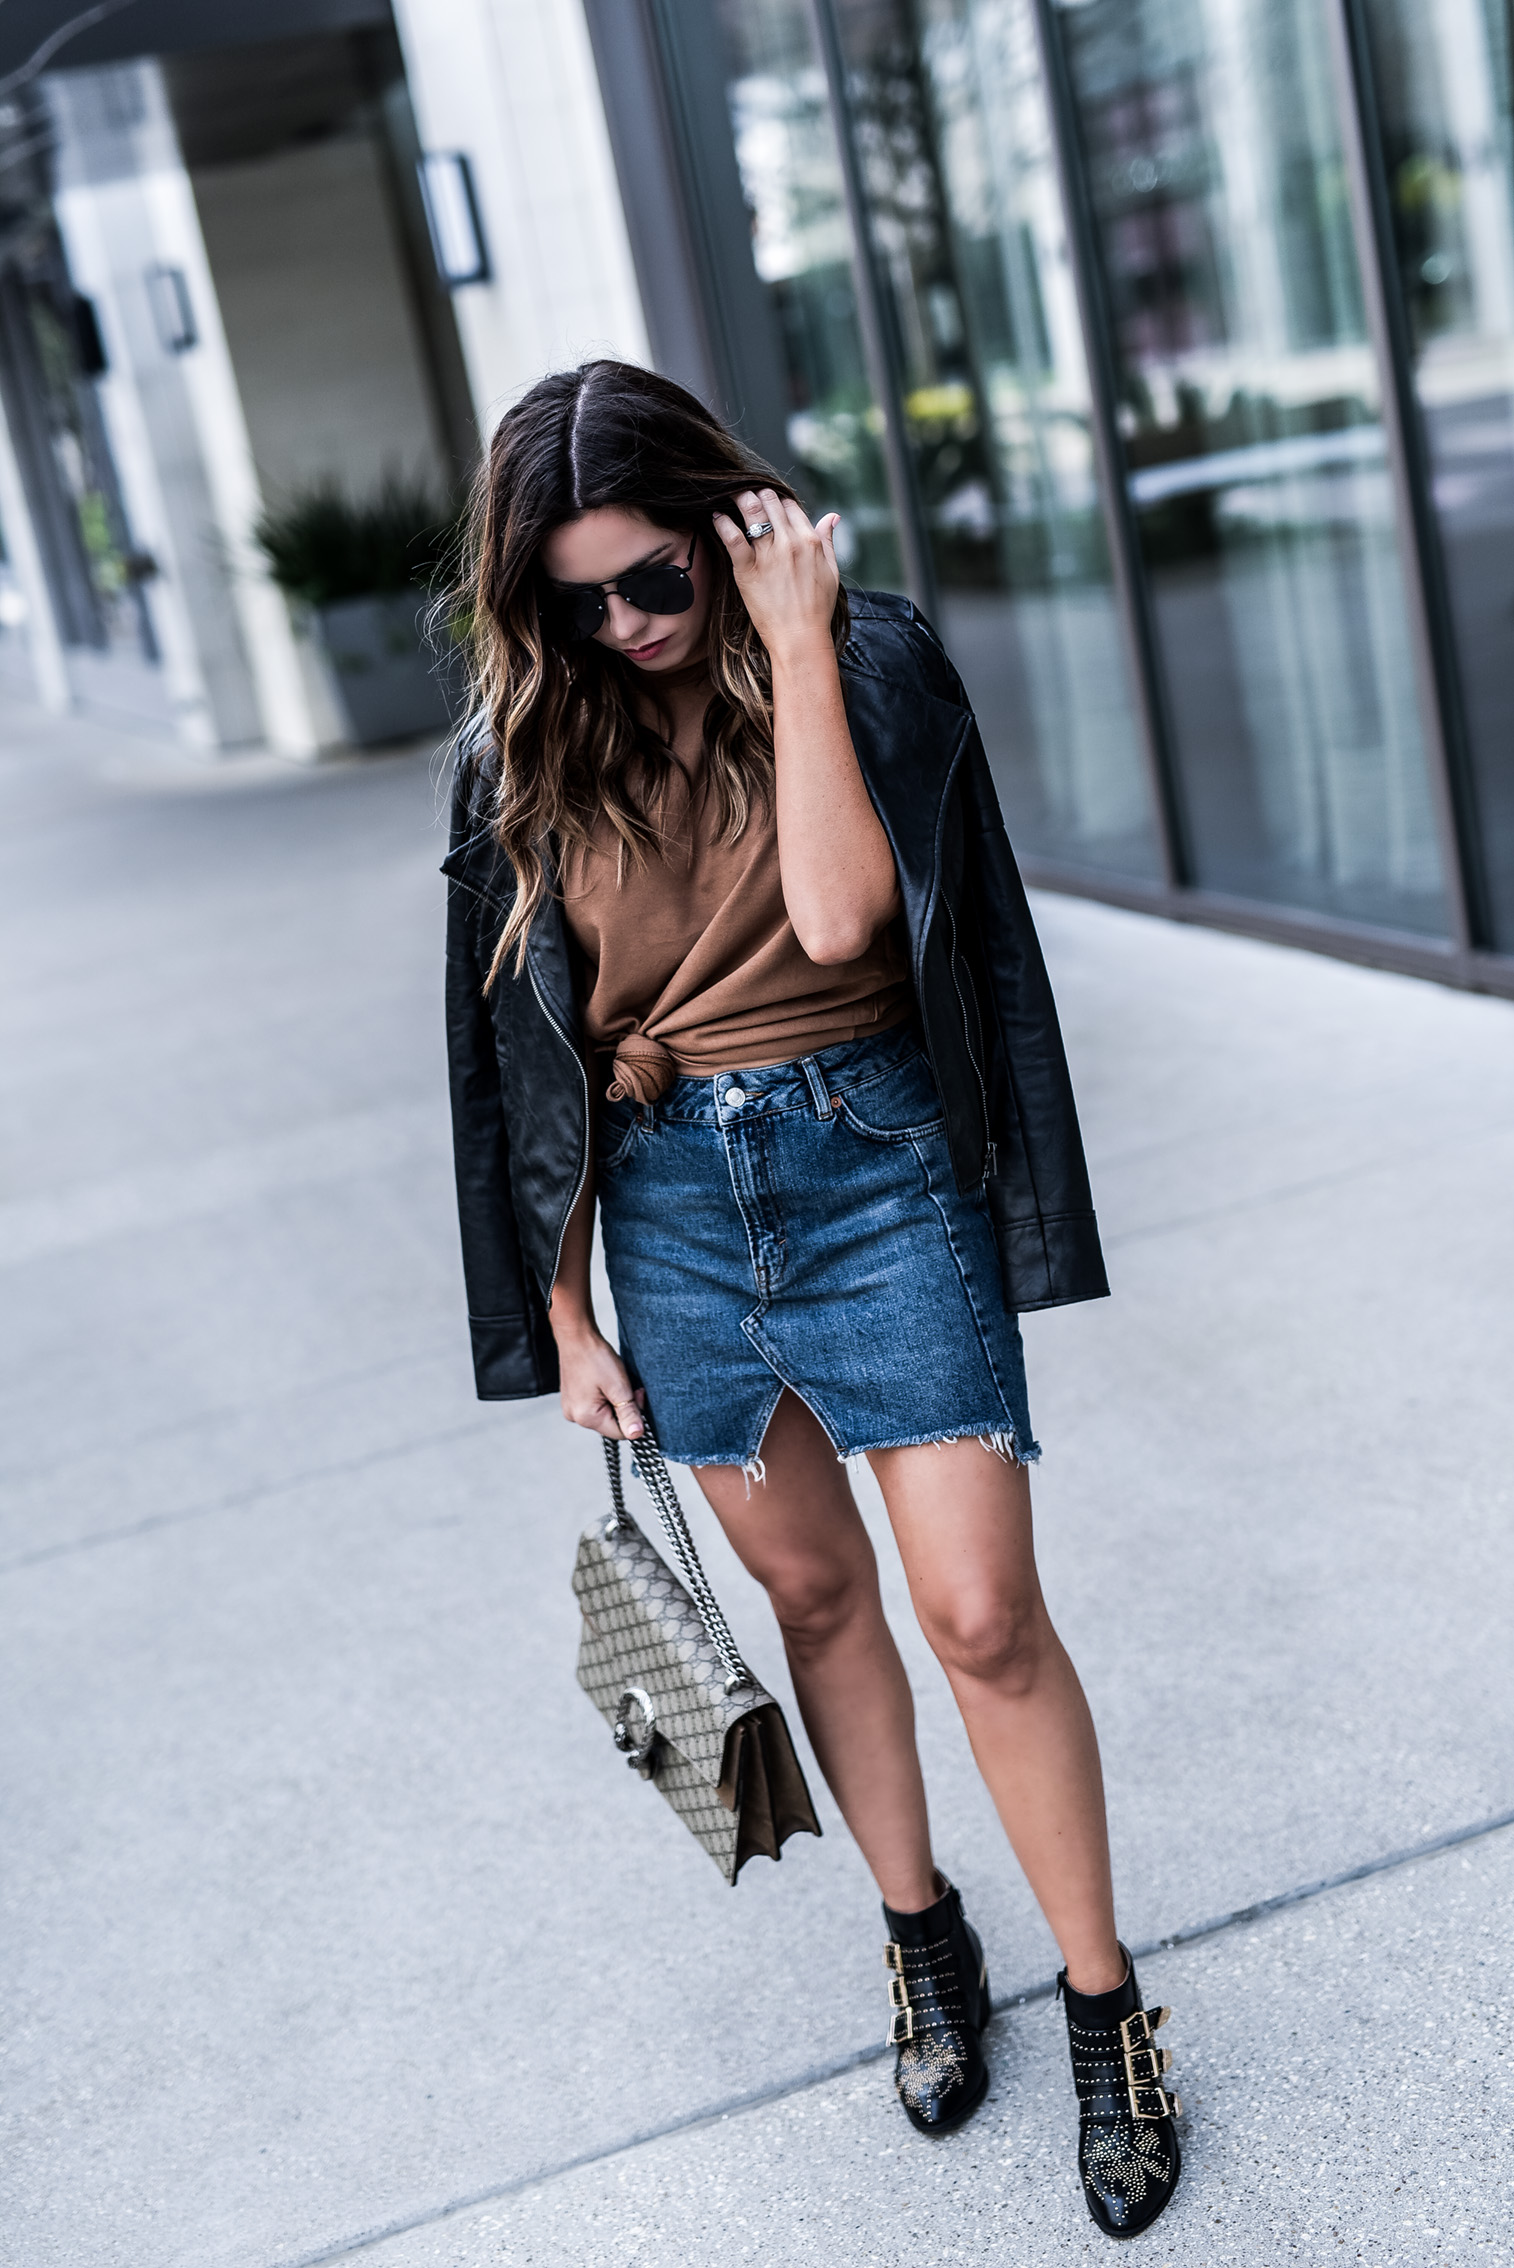 Denim skirt styled two ways! Love dressing up a denim skirt with heels and chic accessories, click to read the full article and shop the look! Outfit ideas for school, outfit ideas, black zara ankle boots, necktie trend, streetstyle outfits